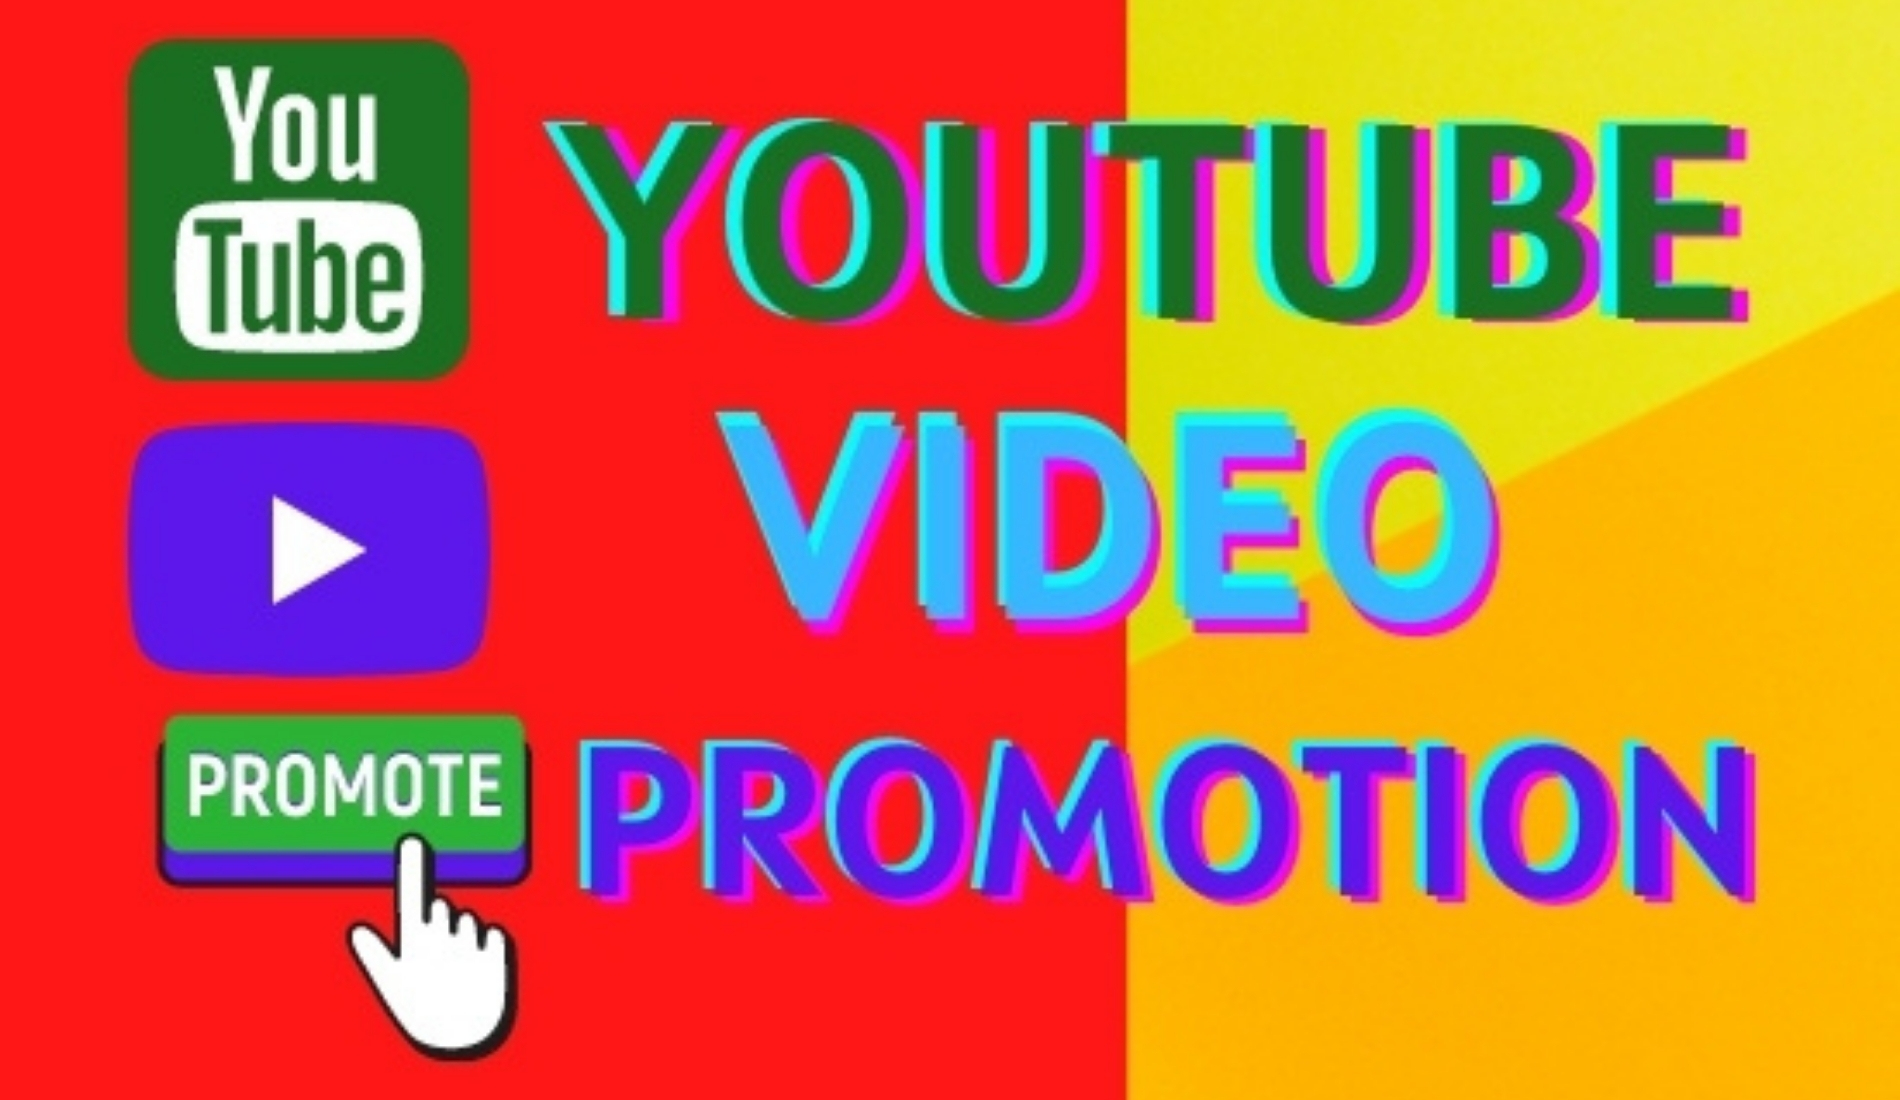 Organic Youtube Video Promotion for Video Viral